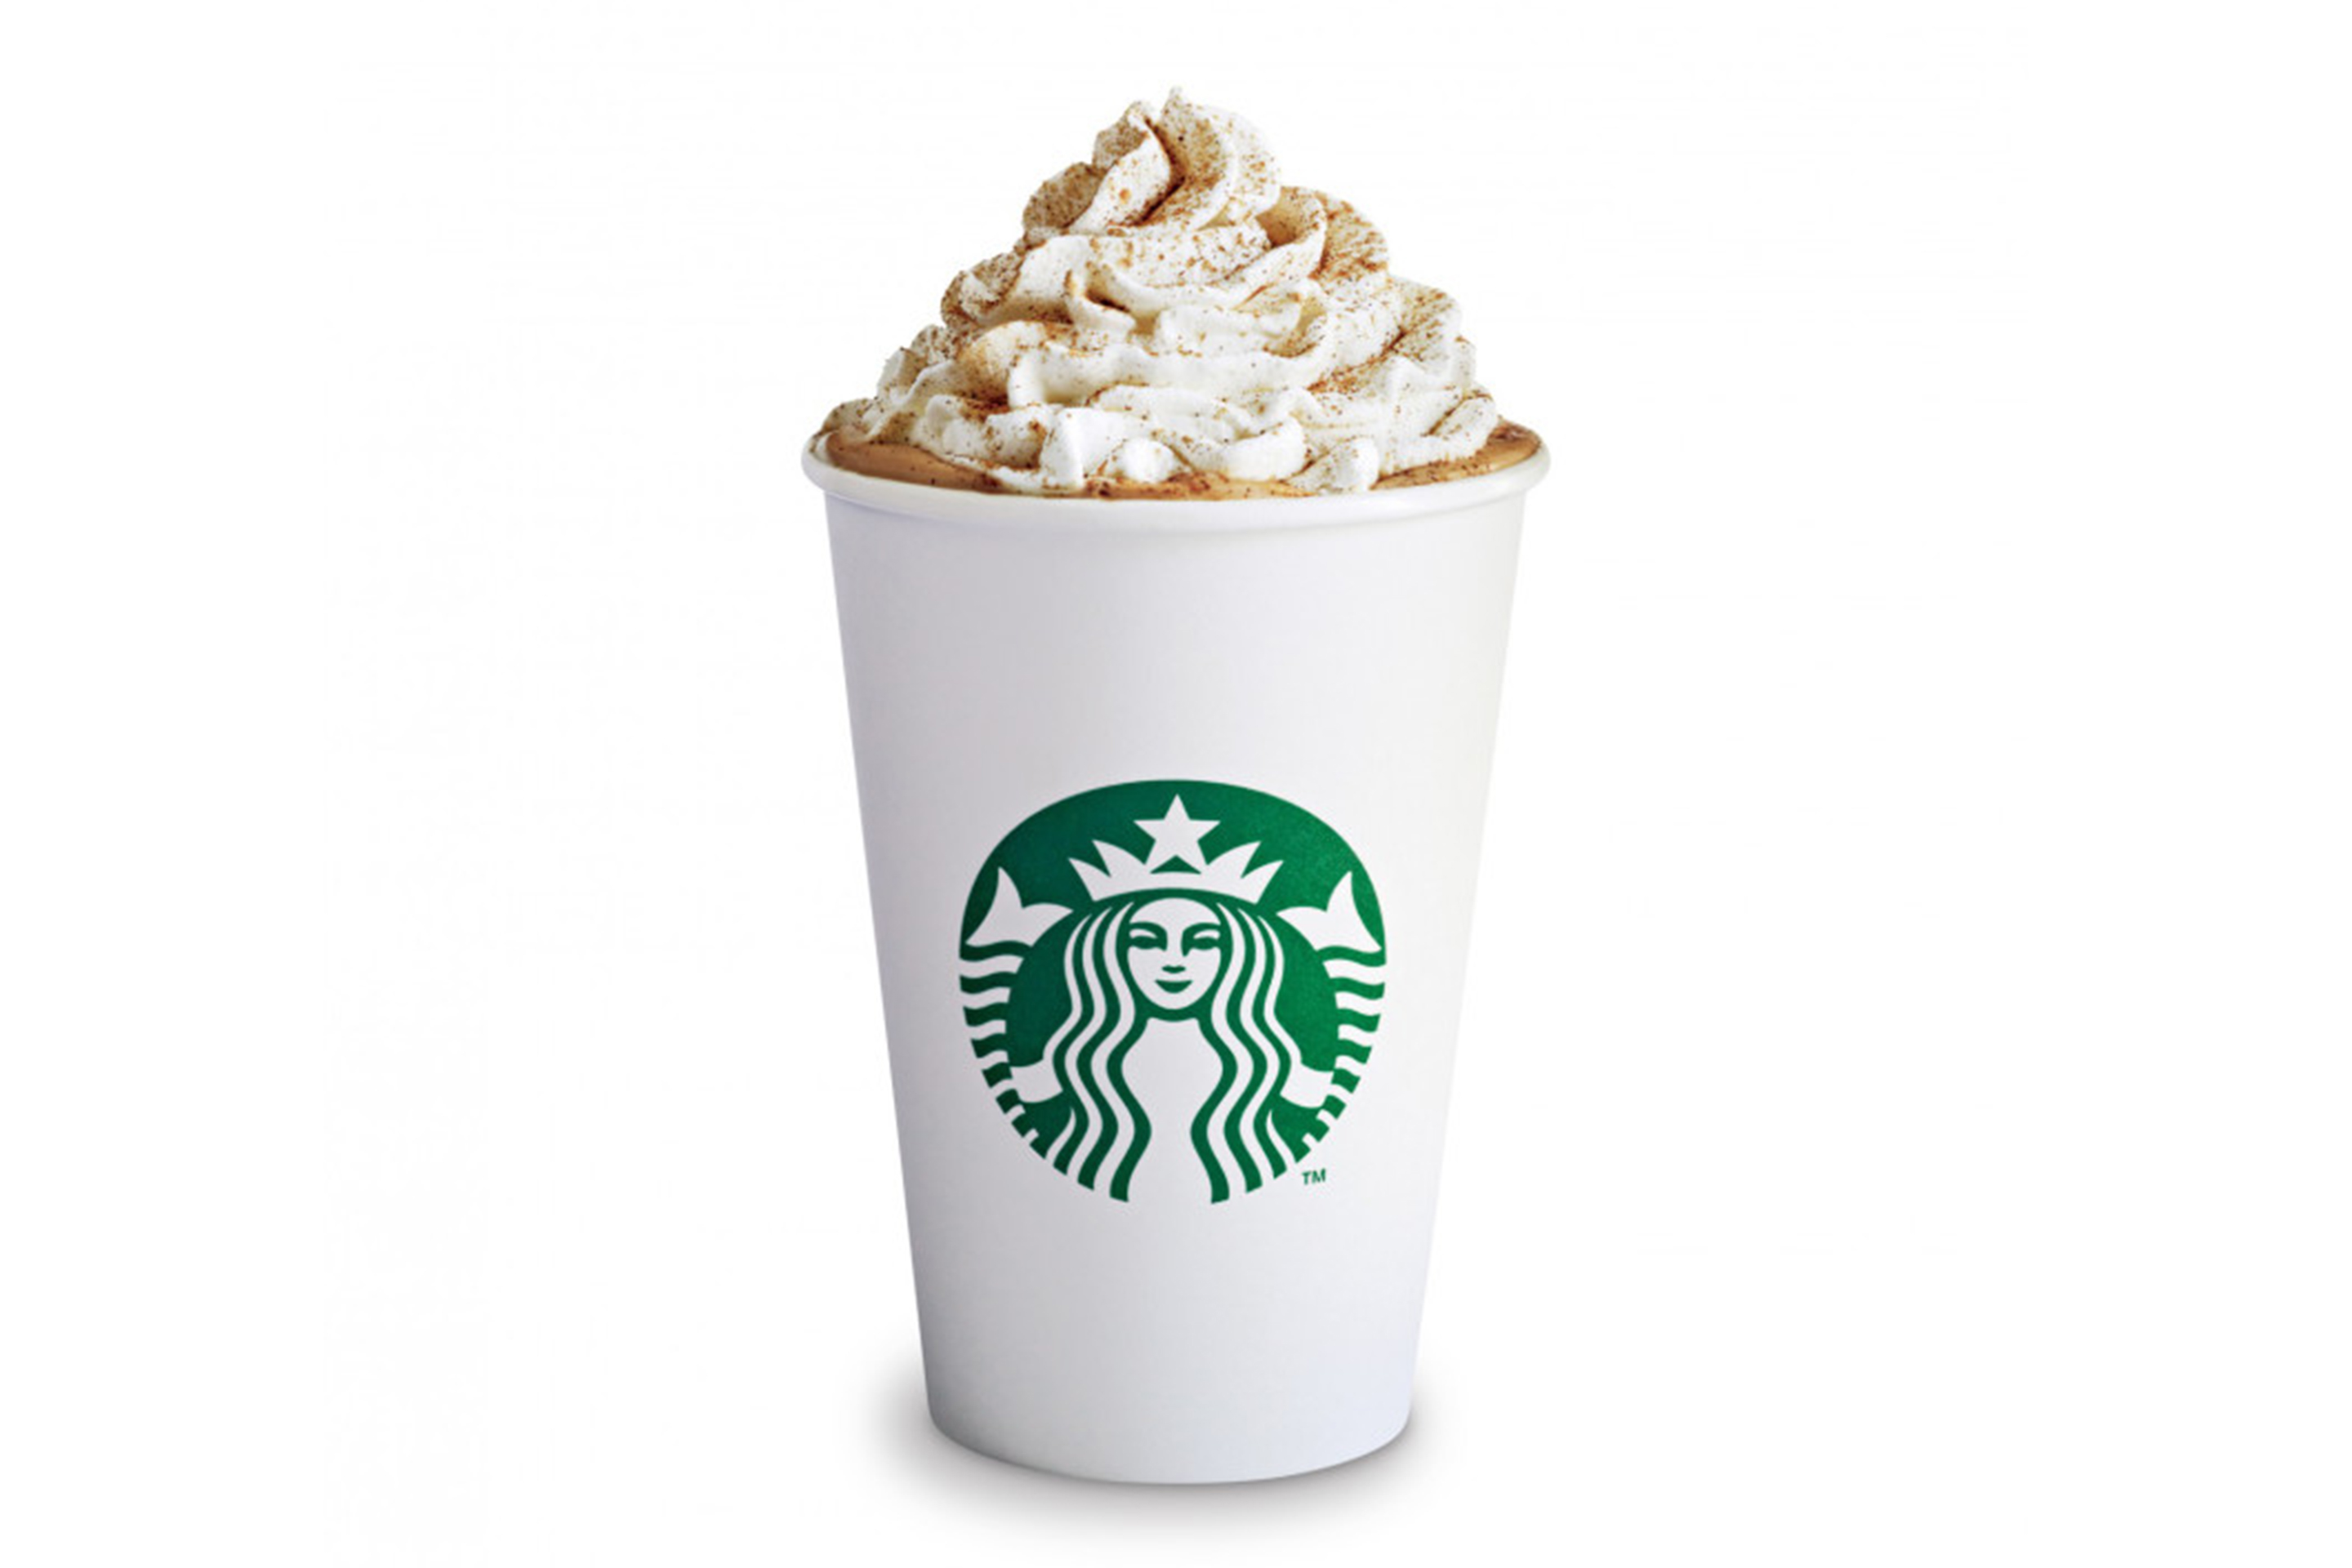 The Pumpkin Spice Latte is the most popular seasonal drink sold at Starbucks.